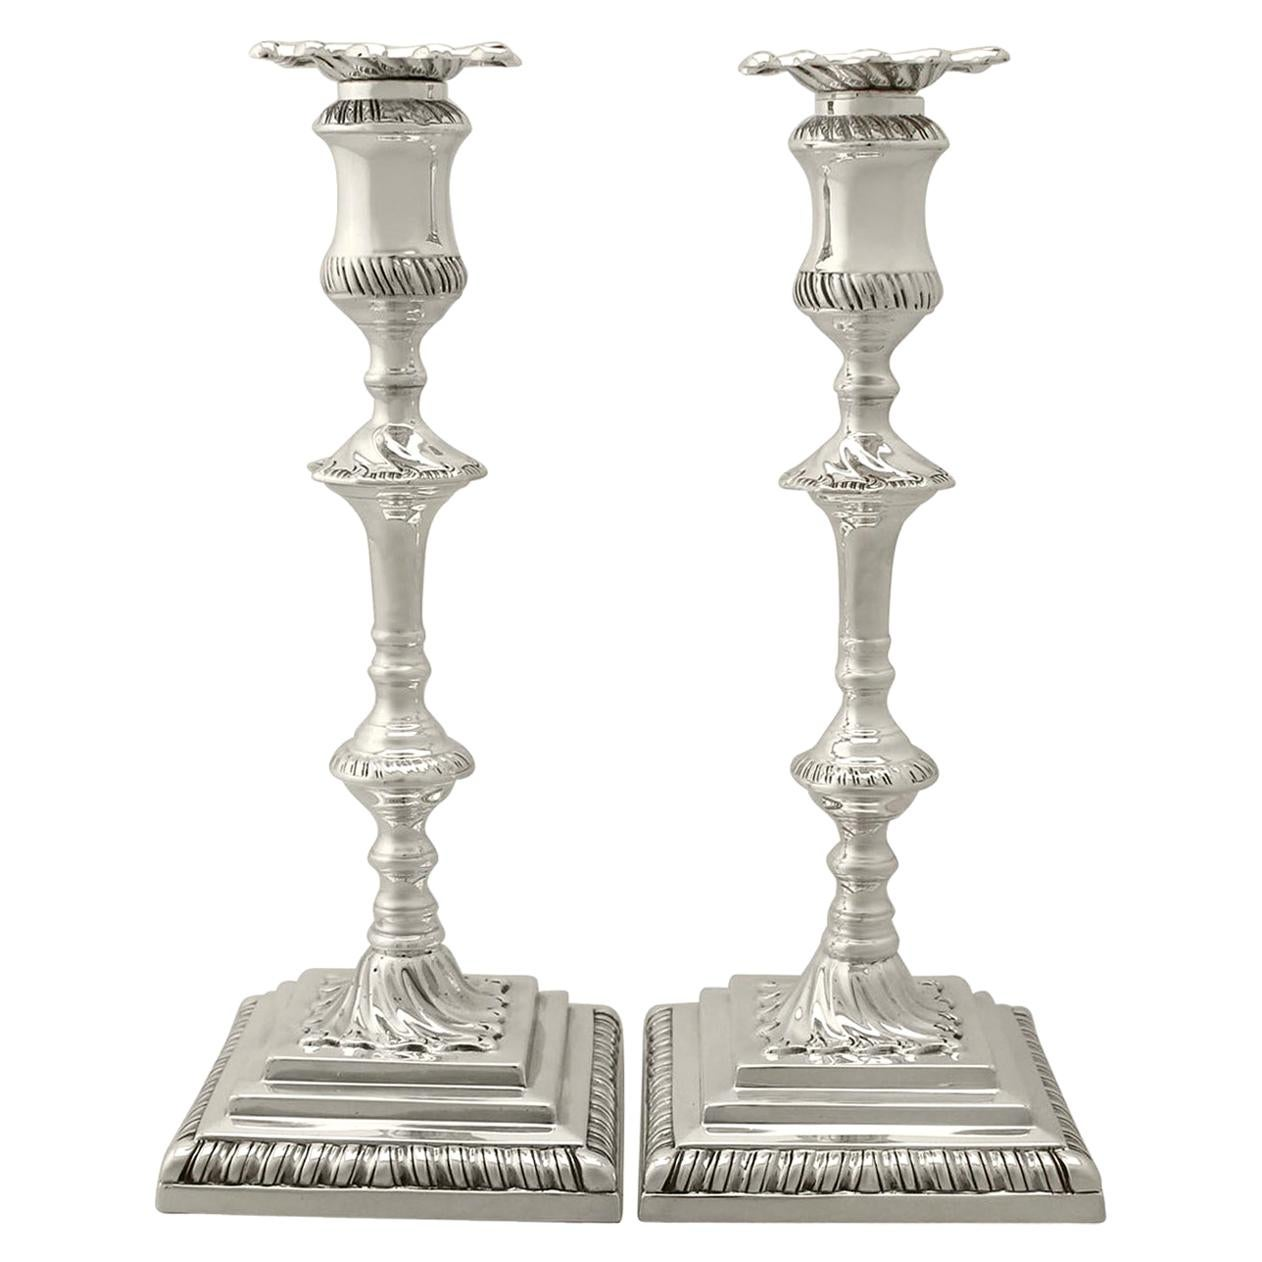 1910s Antique Sterling Silver Candlesticks